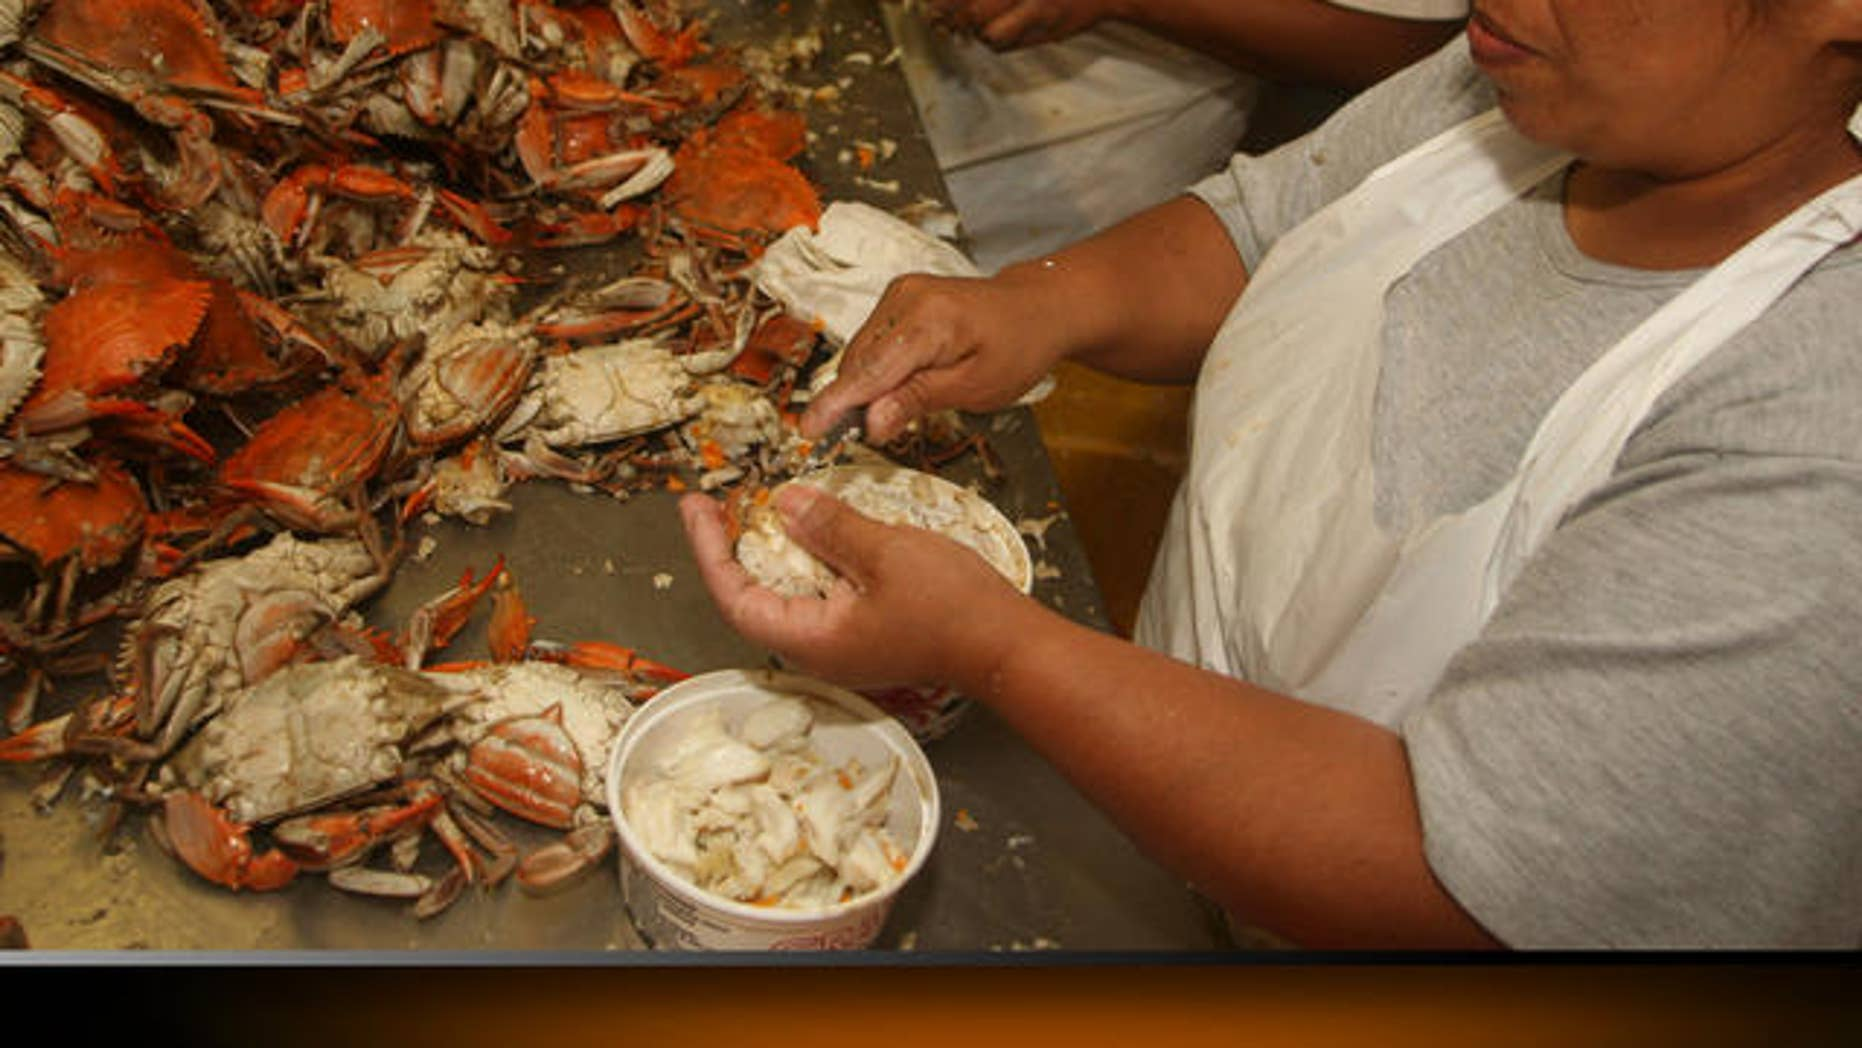 ** ADVANCE FOR SUNDAY, JULY 2 ** Migrant guest worker Poli Resendiz Ponce, of Hidalgo, Mexico, removes the meat from crabs at Russell Hall Seafood, Wednesday June 28, 2006, in Fishing Creek, Md. Crab processors say it's an easy decision, either hire Mexican workers to pick crabs or close up shop. The only thing they're unsure of is whether they'll be allowed to hire employees next year on seasonal work visas. A two-year extension of the visa program that allows them to staff Eastern Shore crab houses with workers to pry lump meat out of crabs expires this year, and an extension is still pending in Congress.(AP/Kathleen Lange)